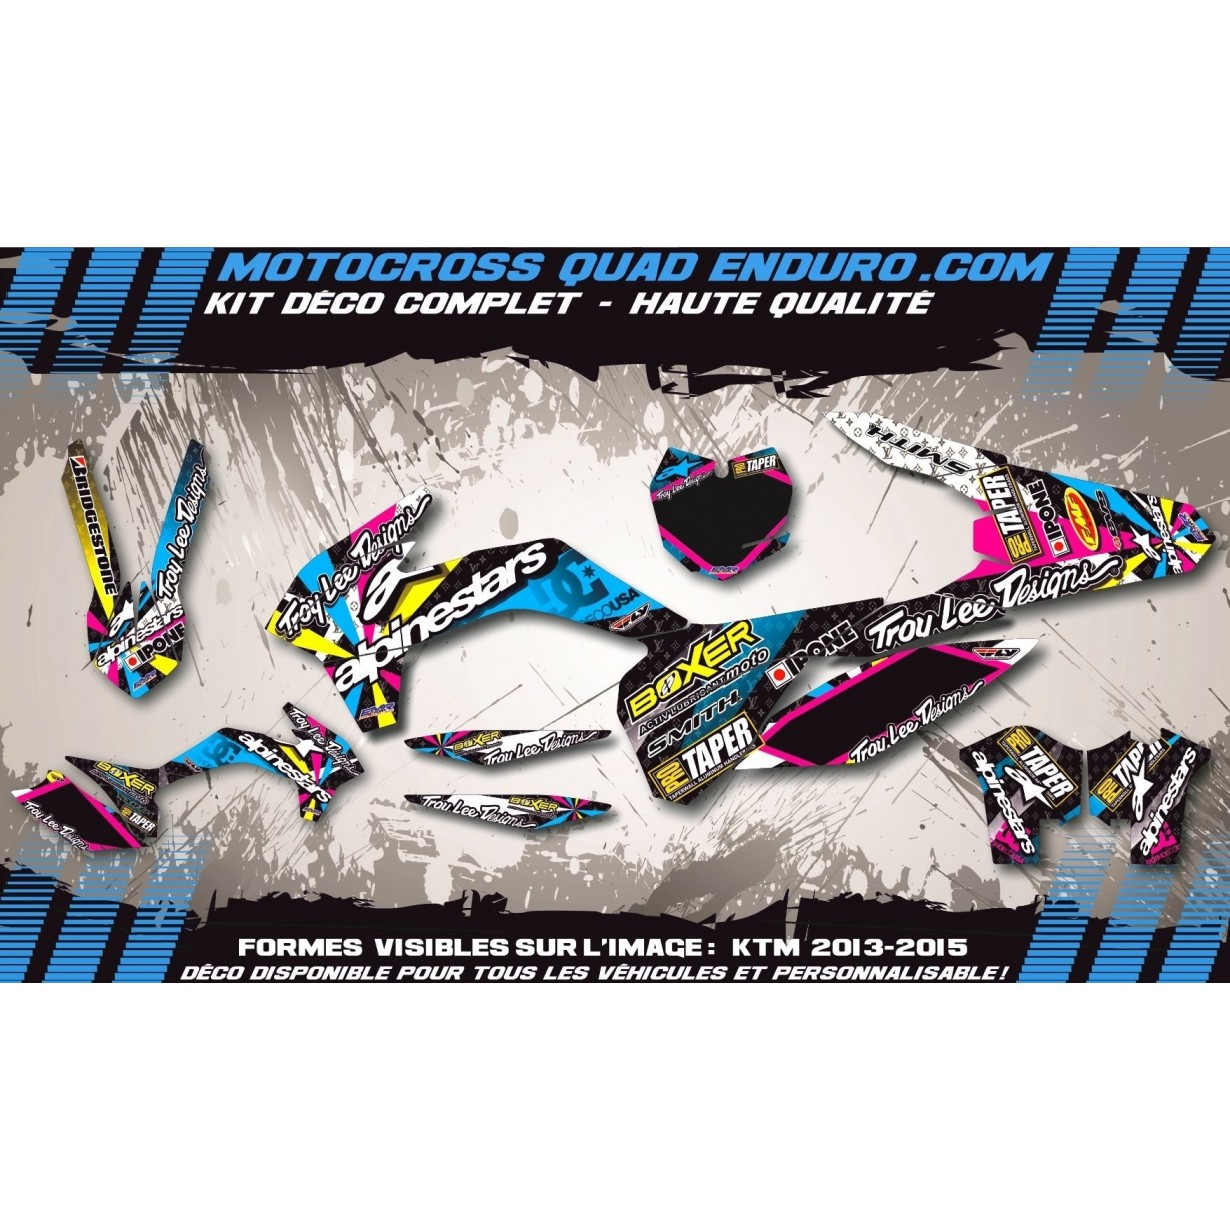 KIT DÉCO Perso 250 CR 95-96 ALPINESTAR MA4A